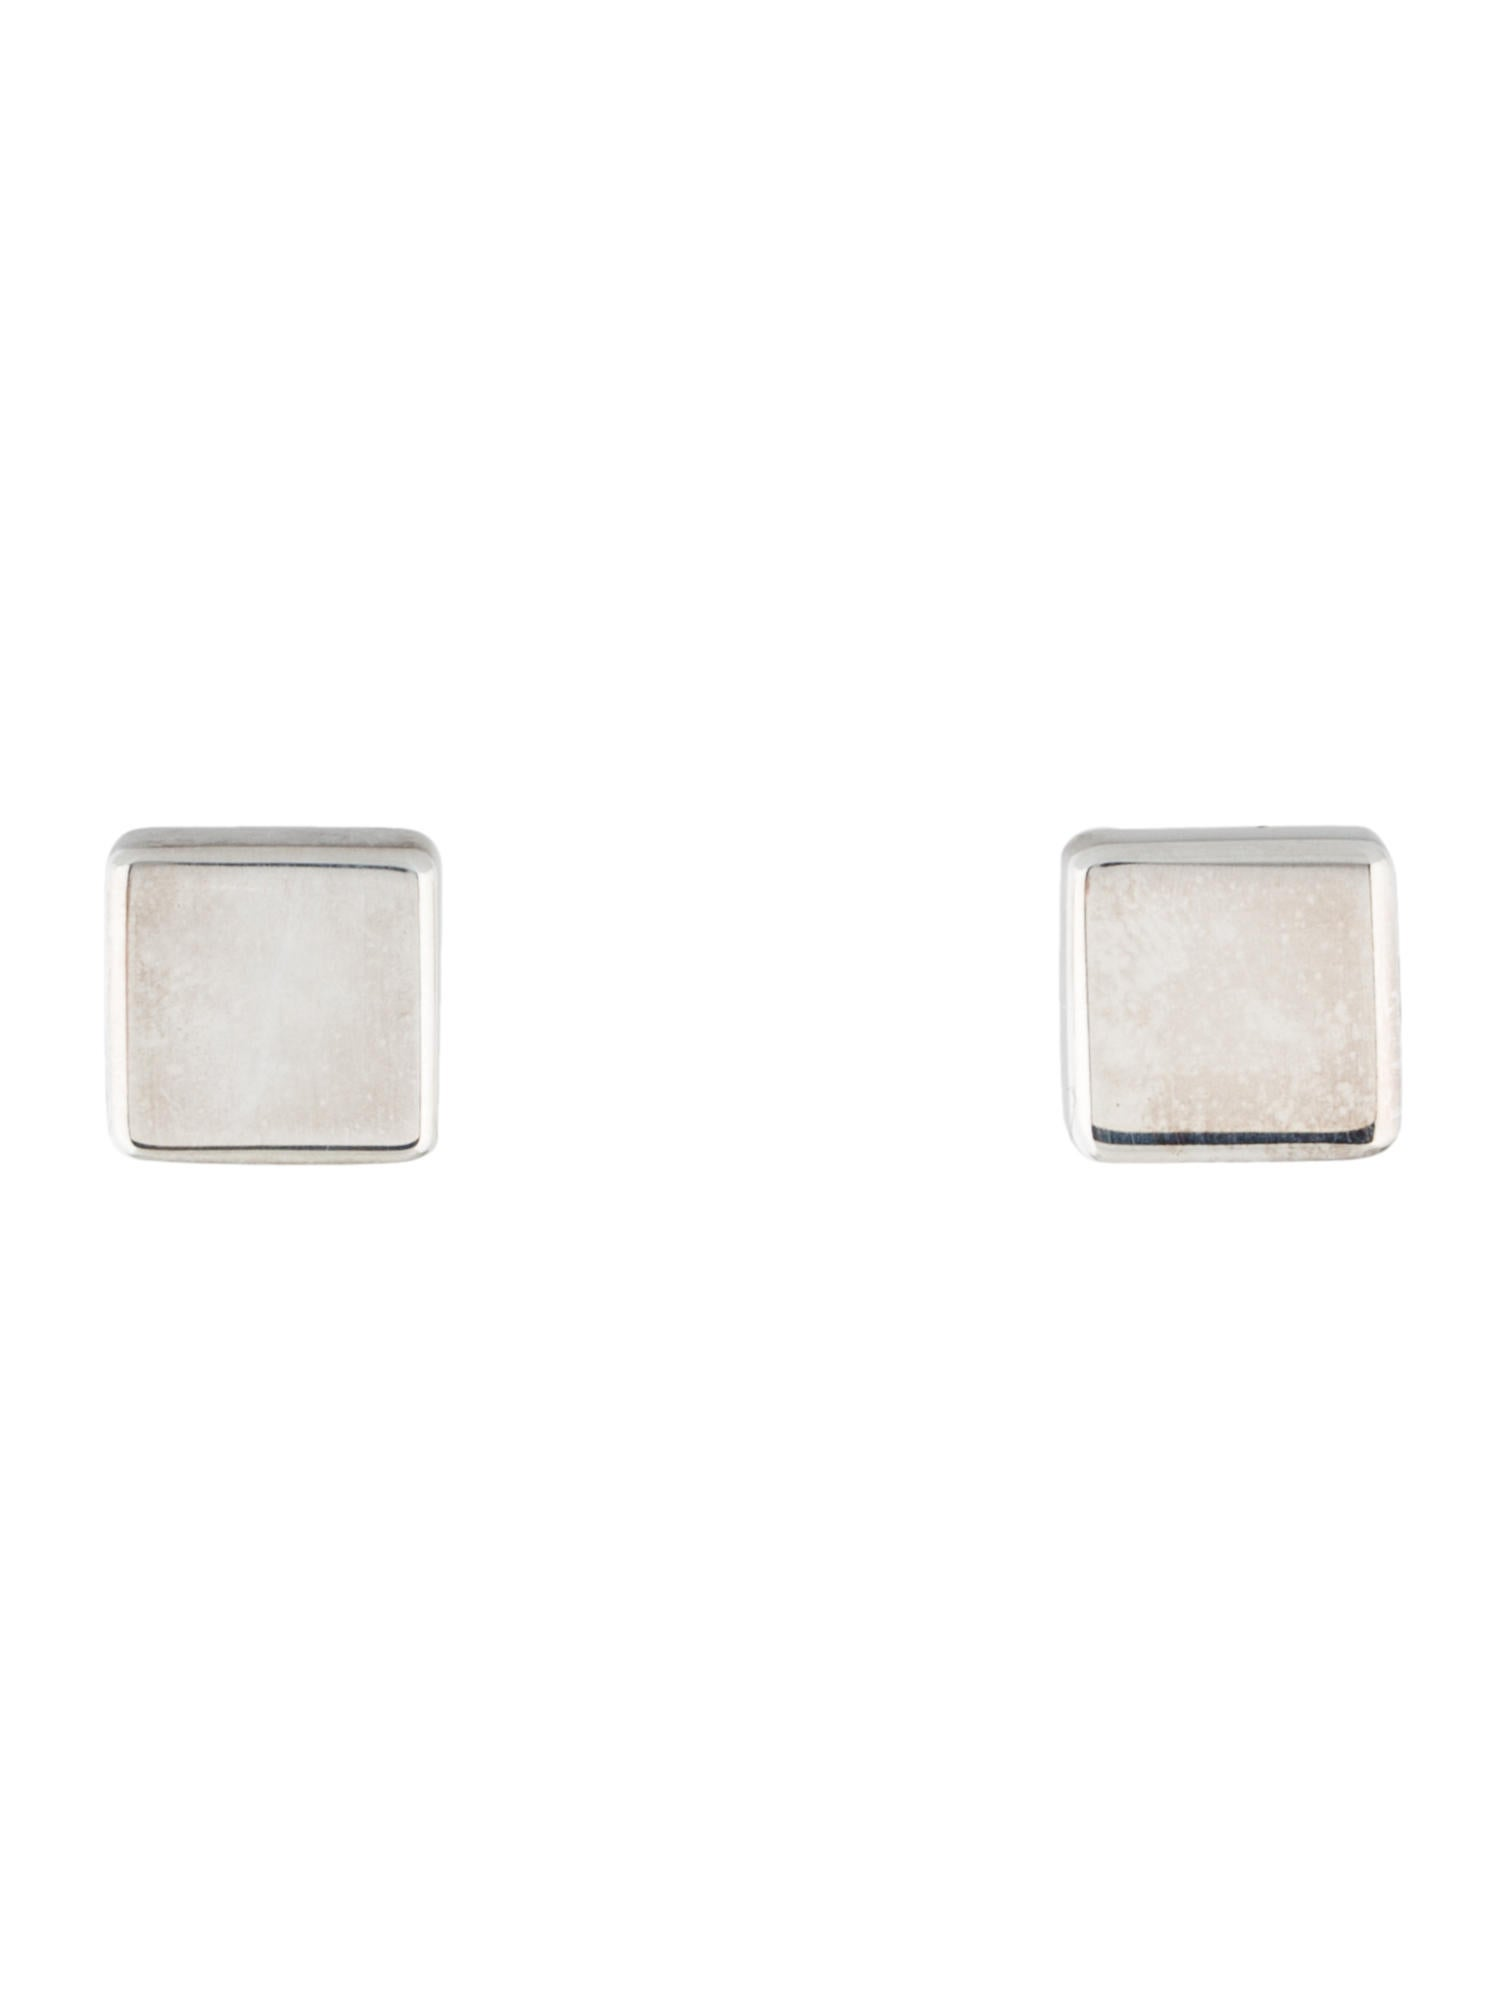 7 For All Mankind Flat Square Stud Earrings In Sterling Silver oXPMQU